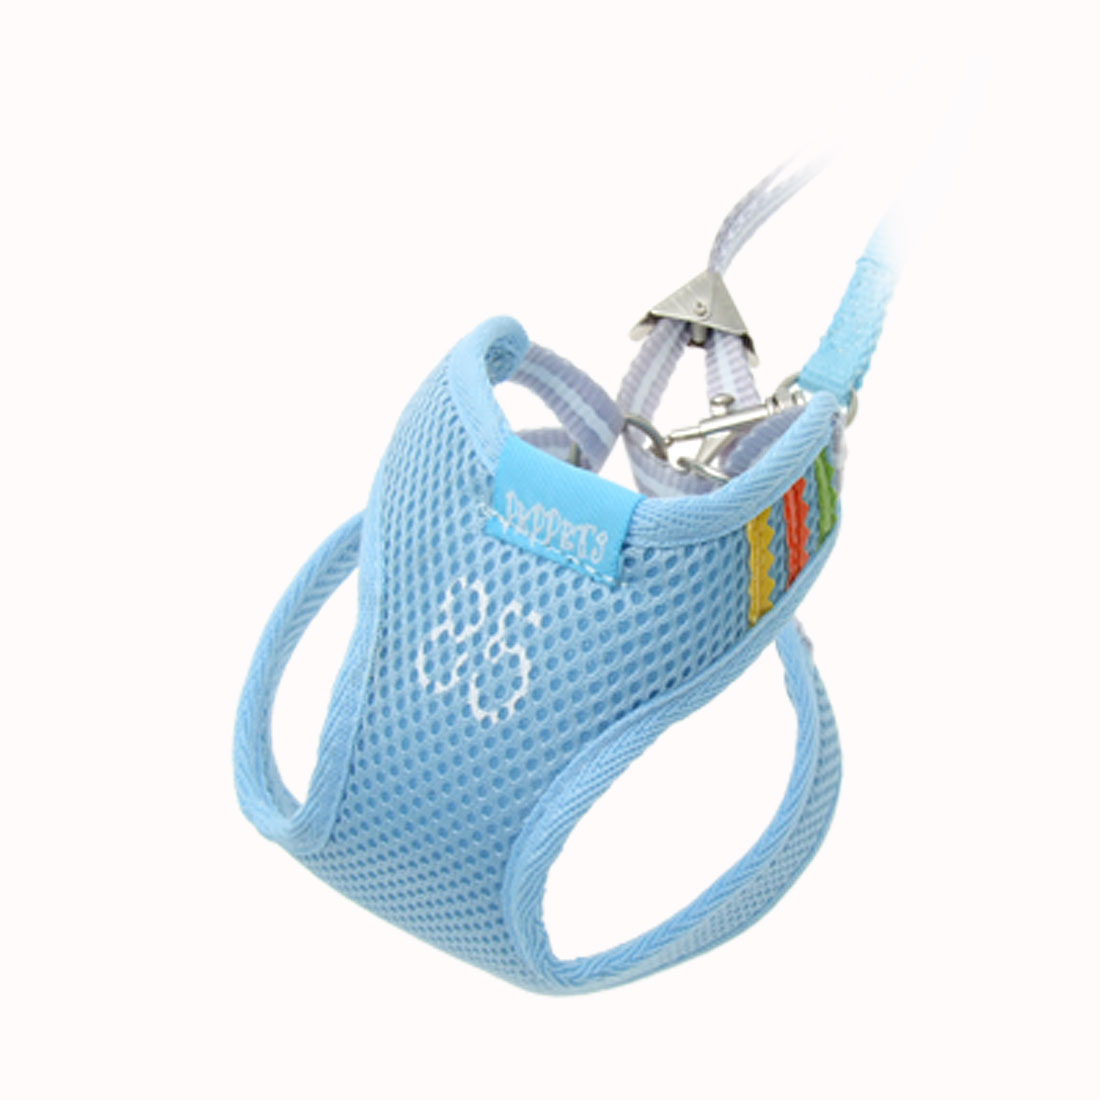 Size 1 Mesh Puppy Doggle Doggie Doggy Pet Dog Vest Harness w/ Leash